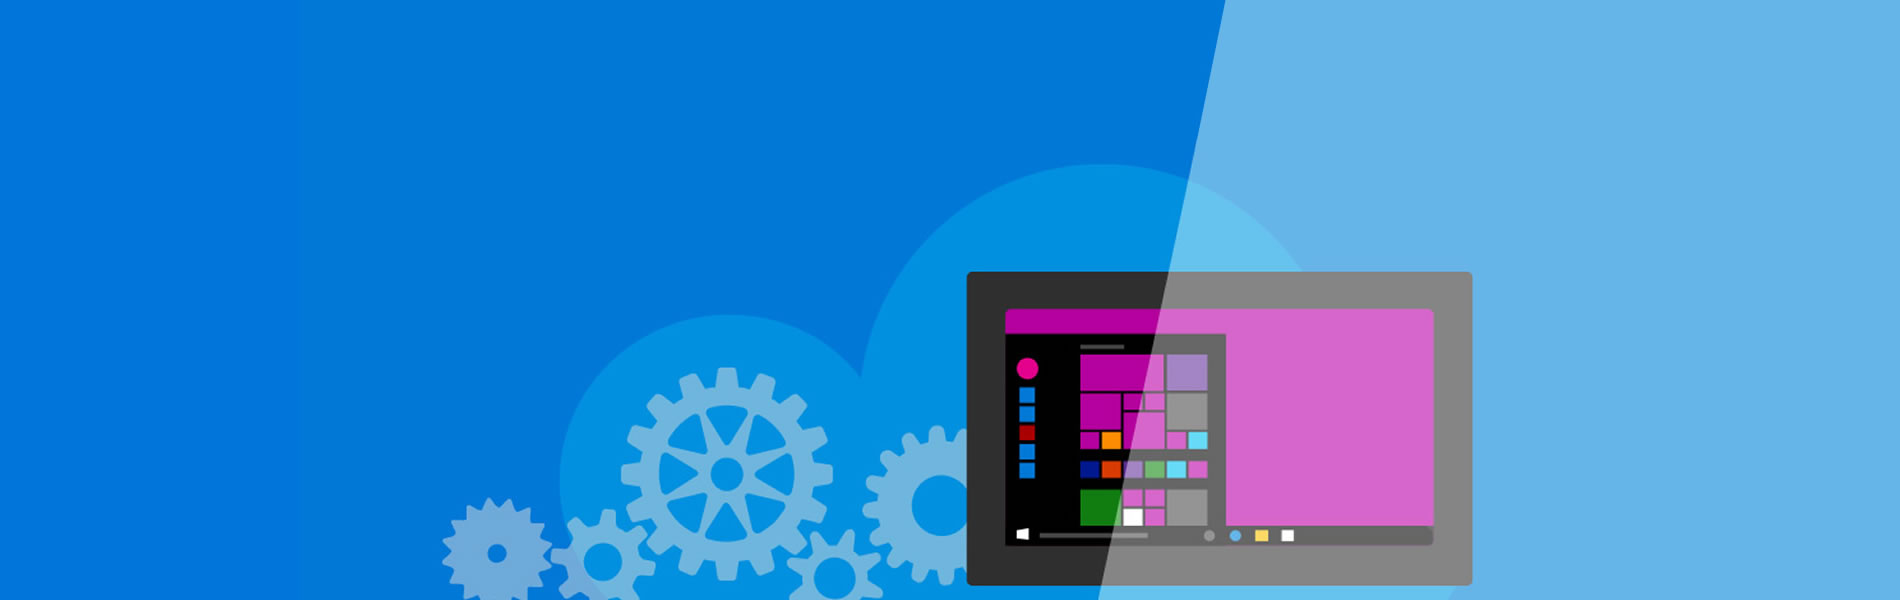 Illustration of a computer with the Windows start screen on a blue background with cogs behind the screen